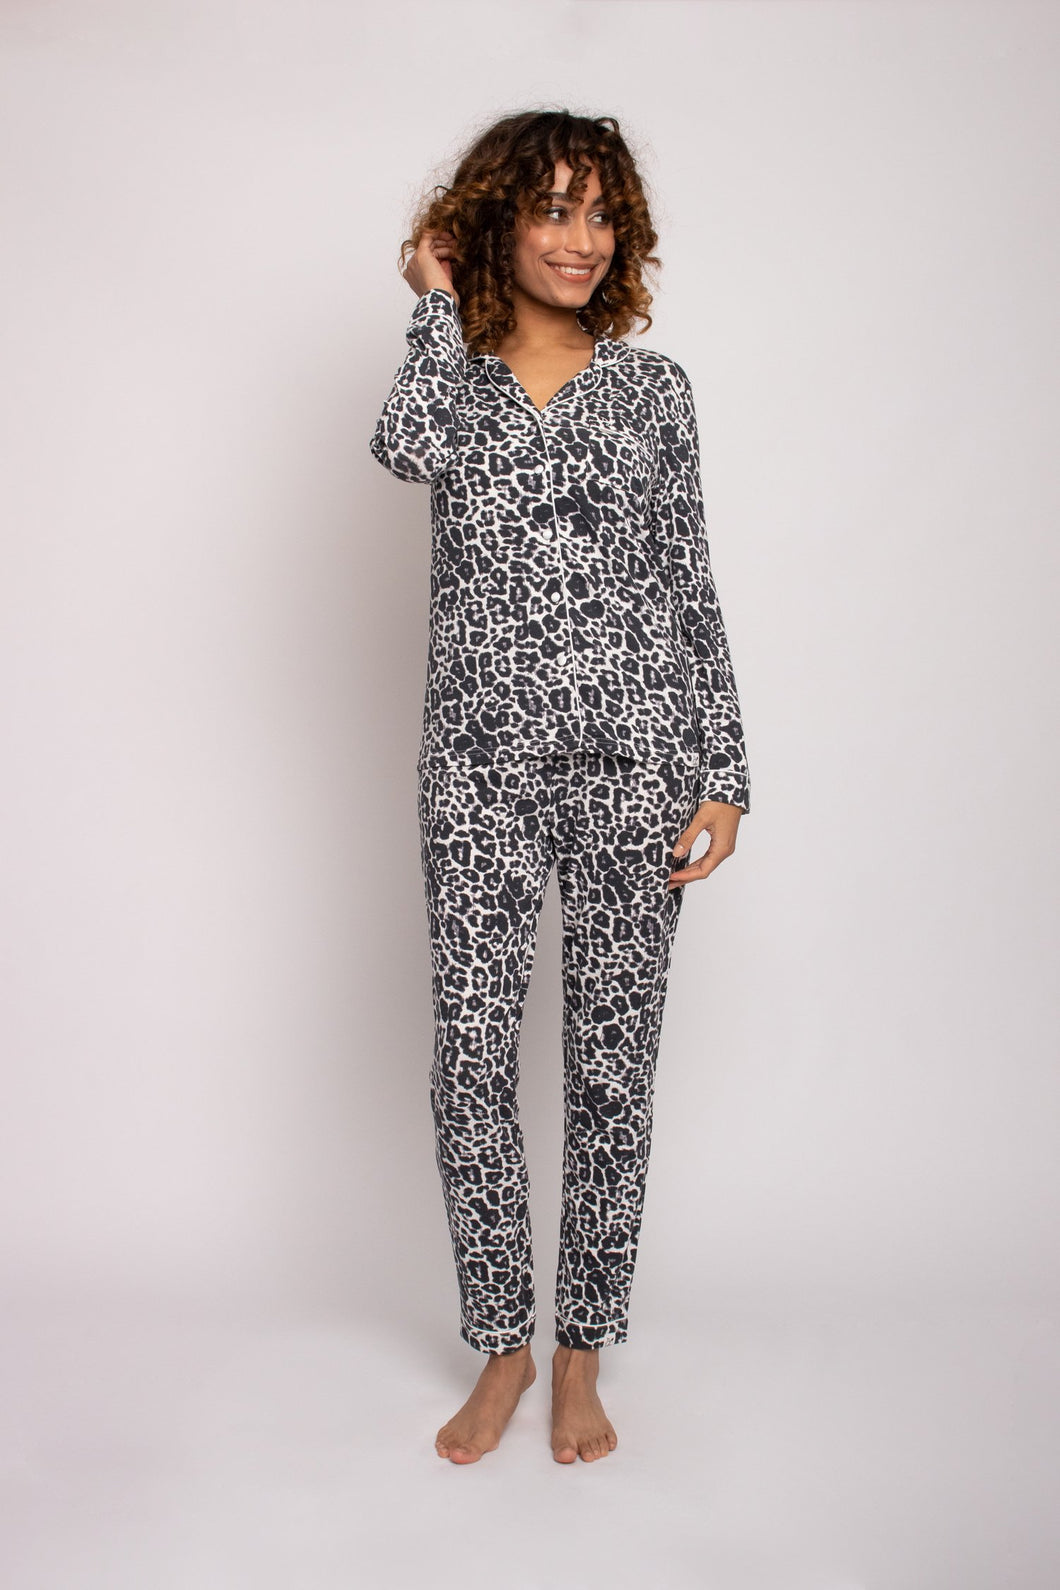 Pretty You London bamboo pyjama leopard